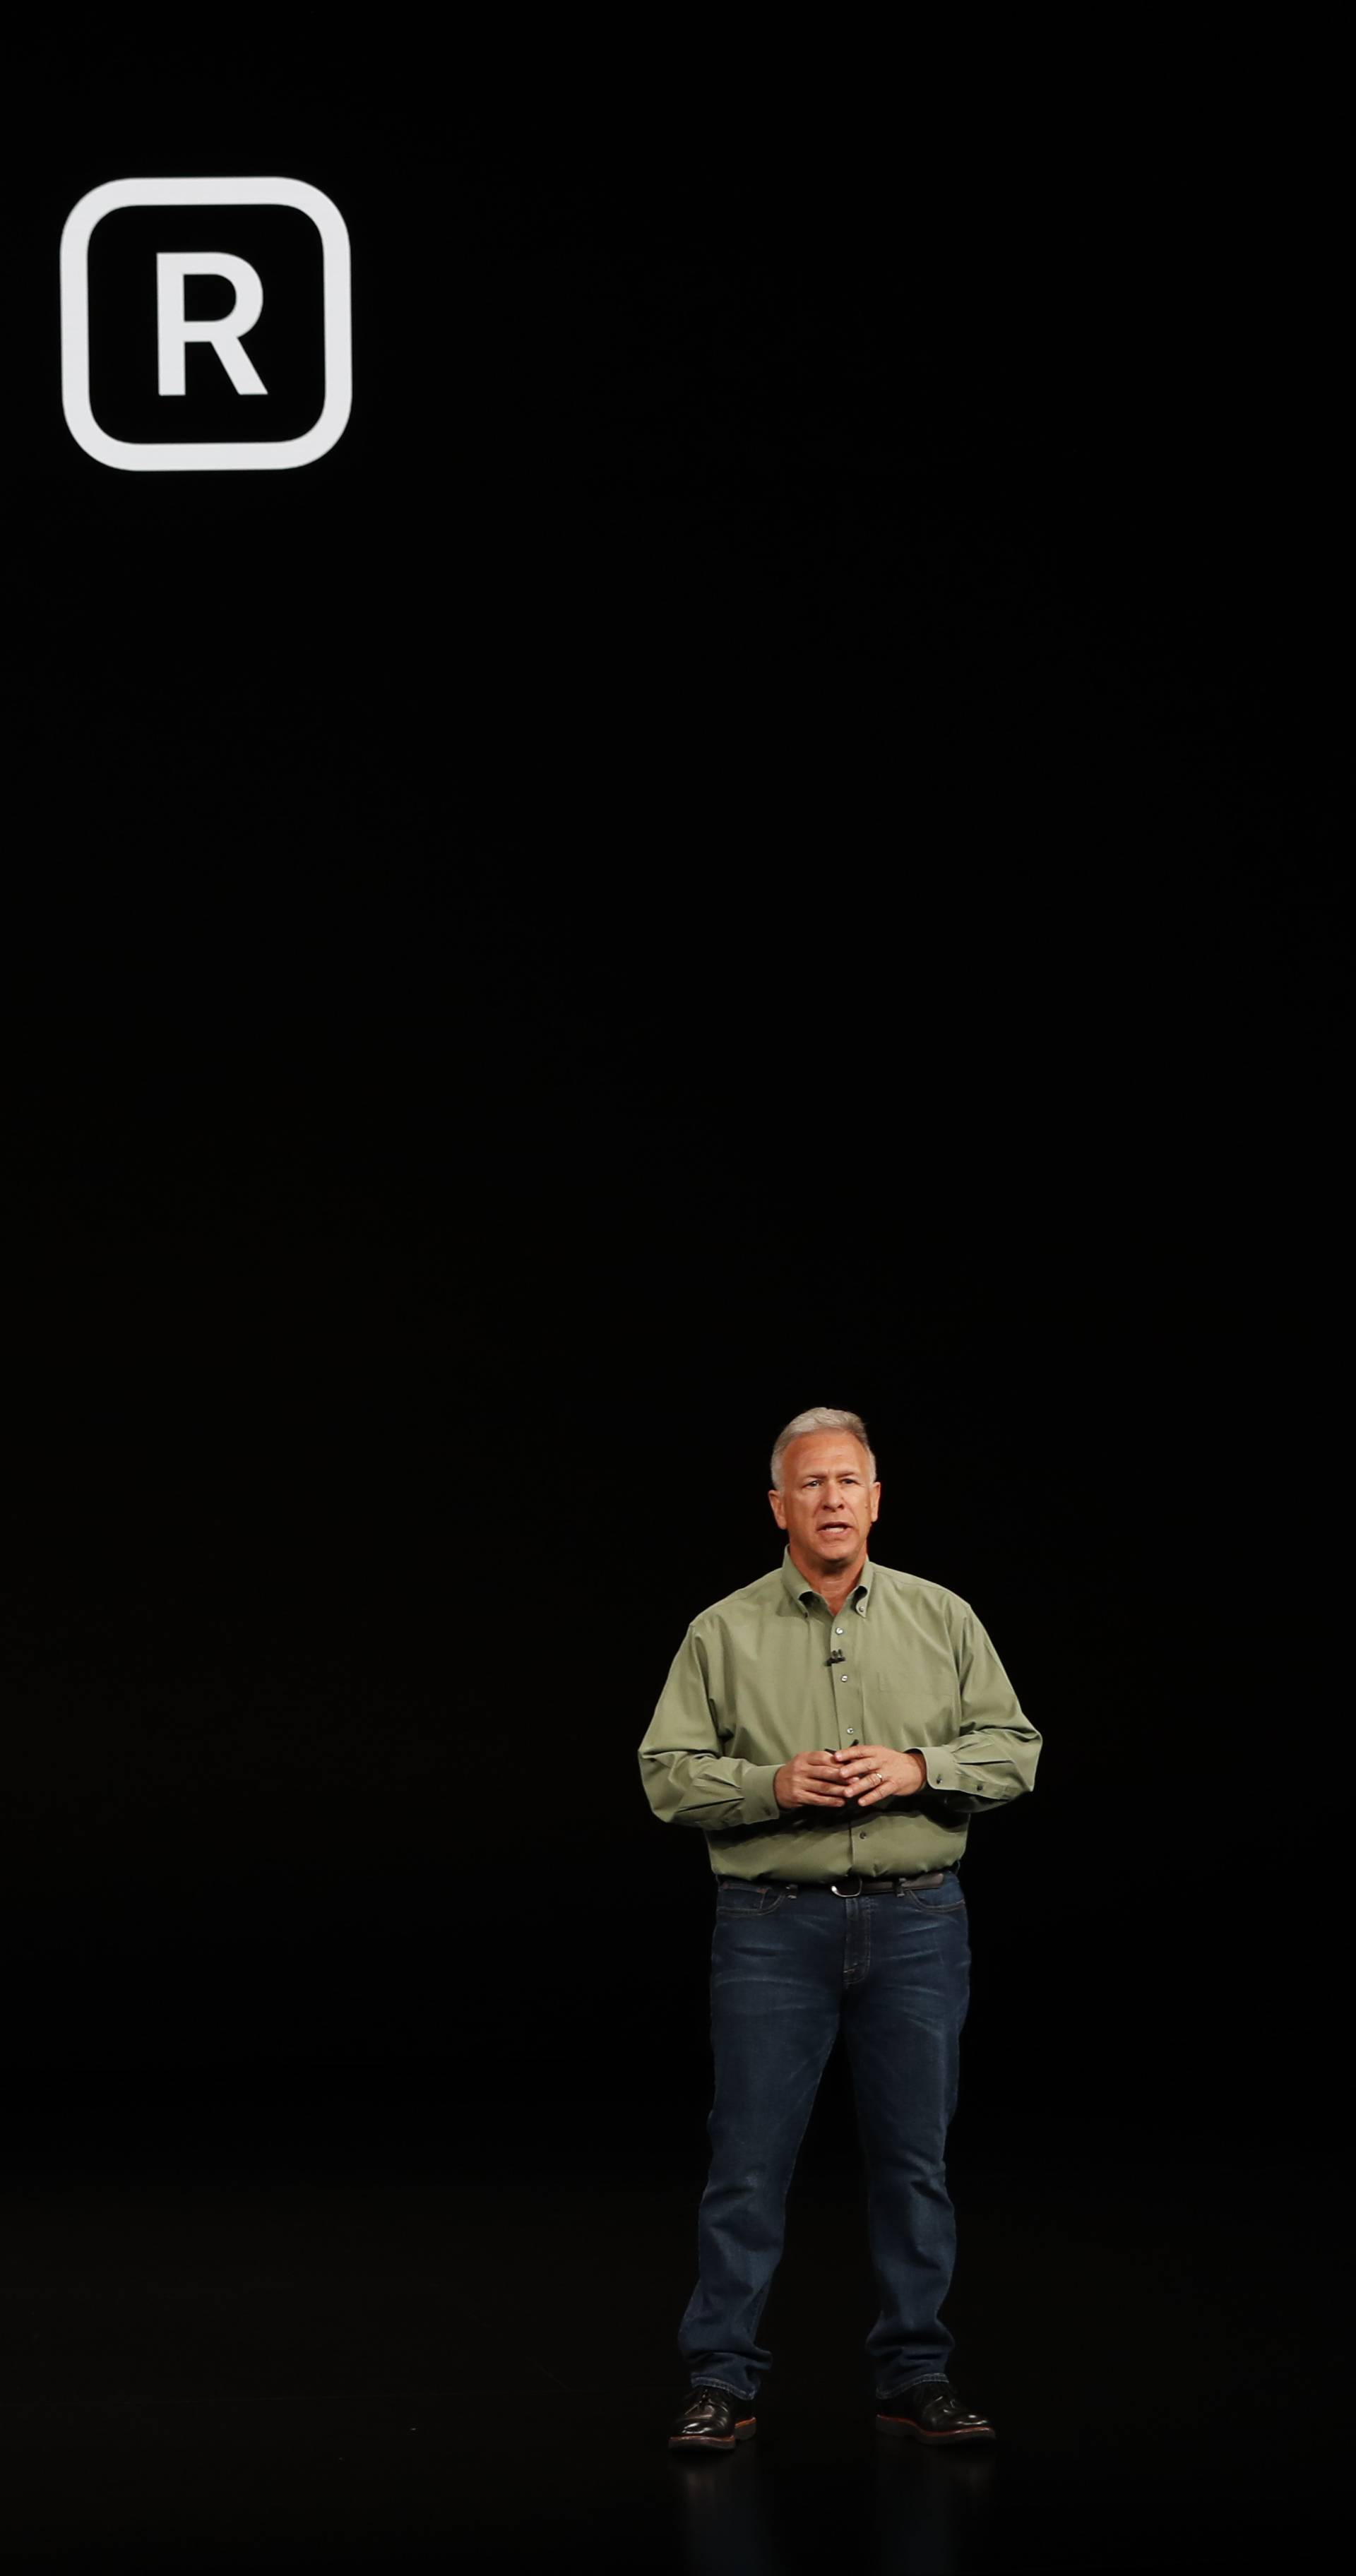 Schiller Senior Vice President, Worldwide Marketing of Apple, speaks about the the new Apple iPhone XR at an Apple Inc product launch in Cupertino